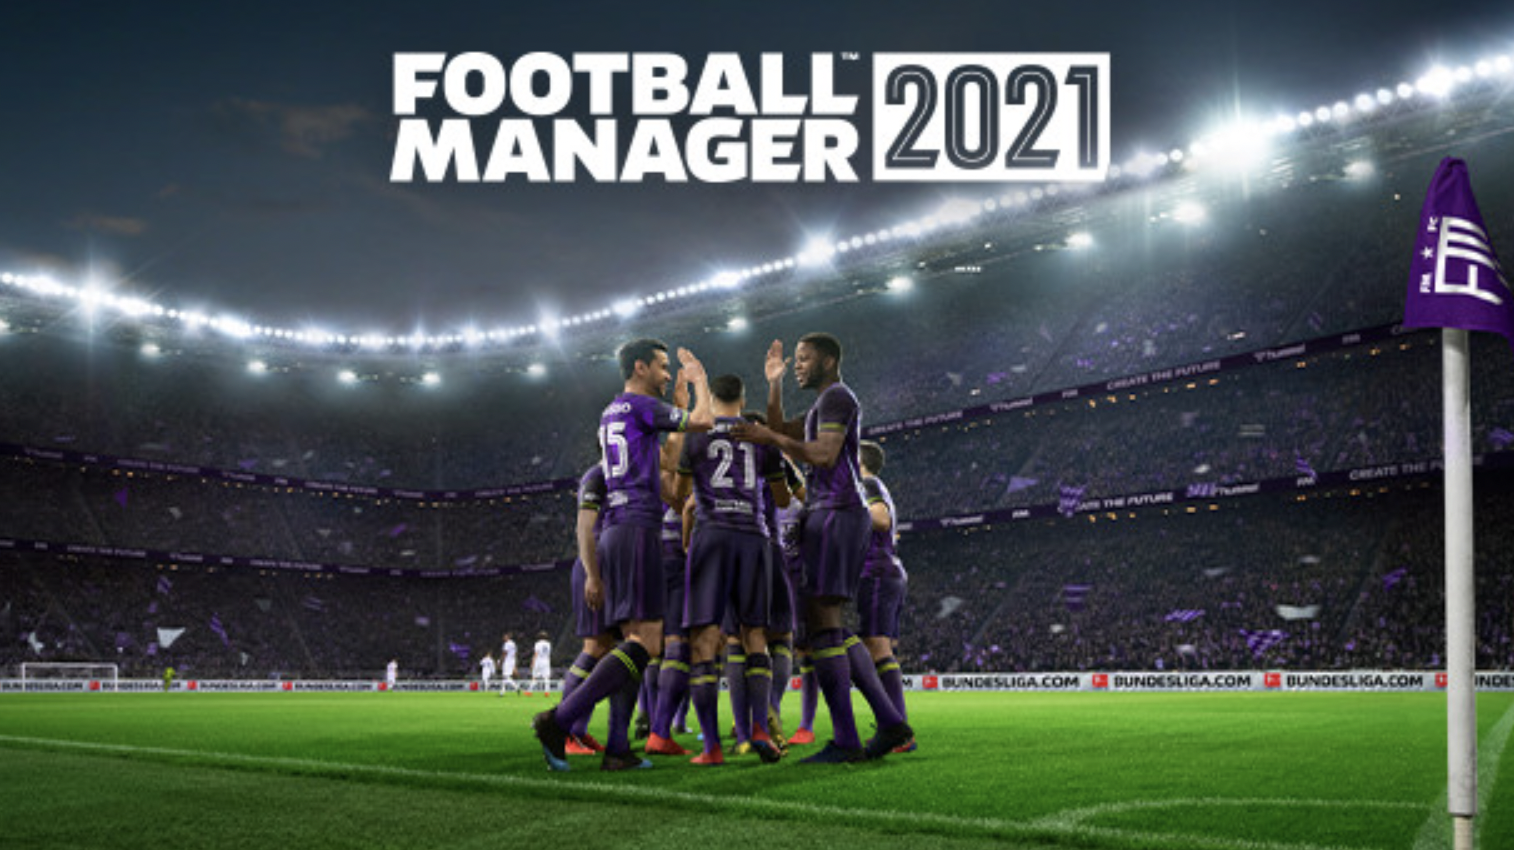 Football Manager 2021 Steam Update 21.1.3